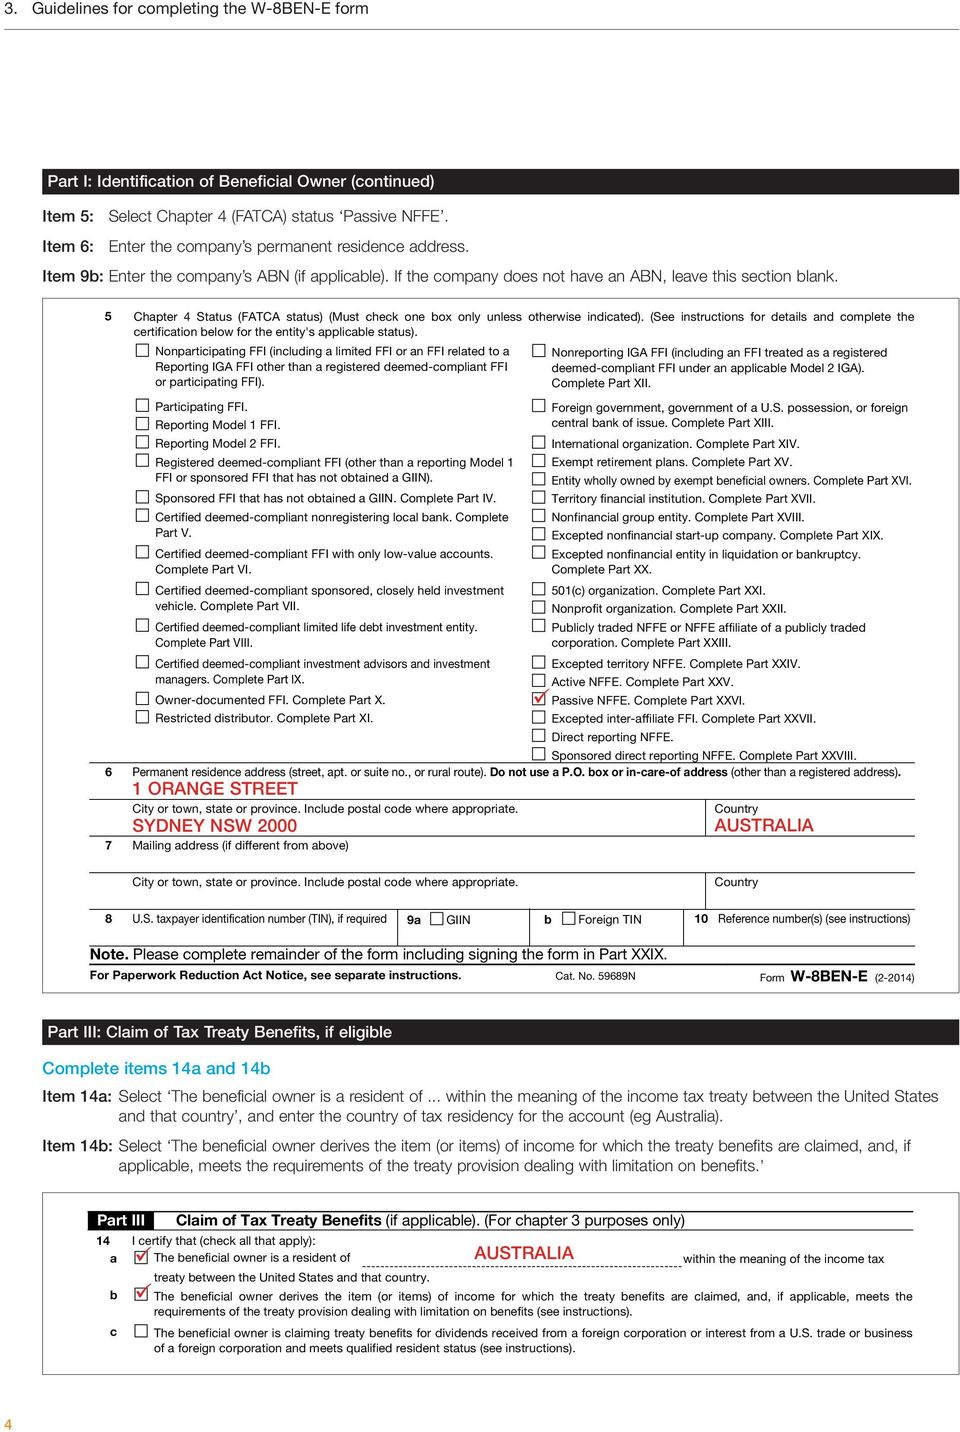 Guide to completing W-8BEN-E entity US tax forms - PDF